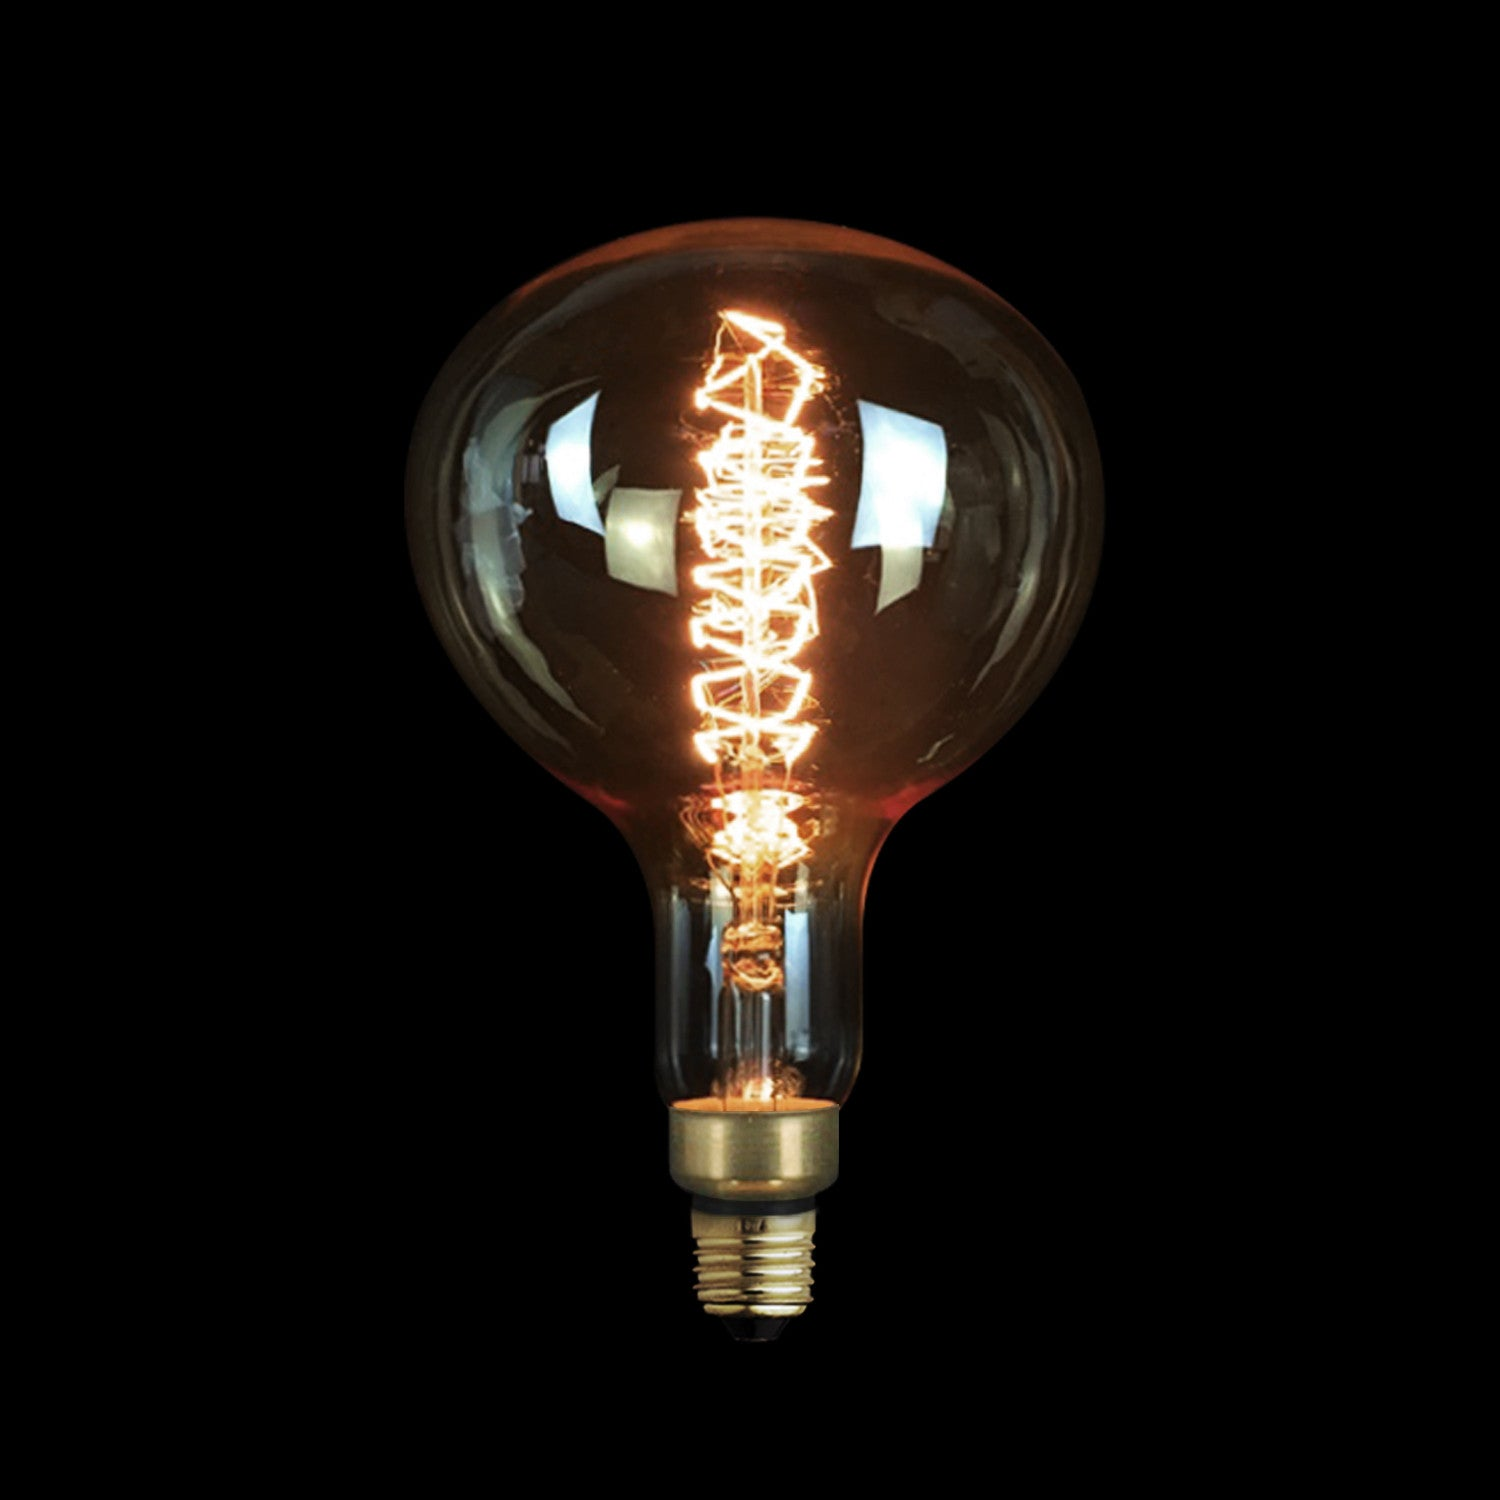 squirrel bulb inches style each is edison lighting looped of buy filament long made box vintage cage supplies light bulbs